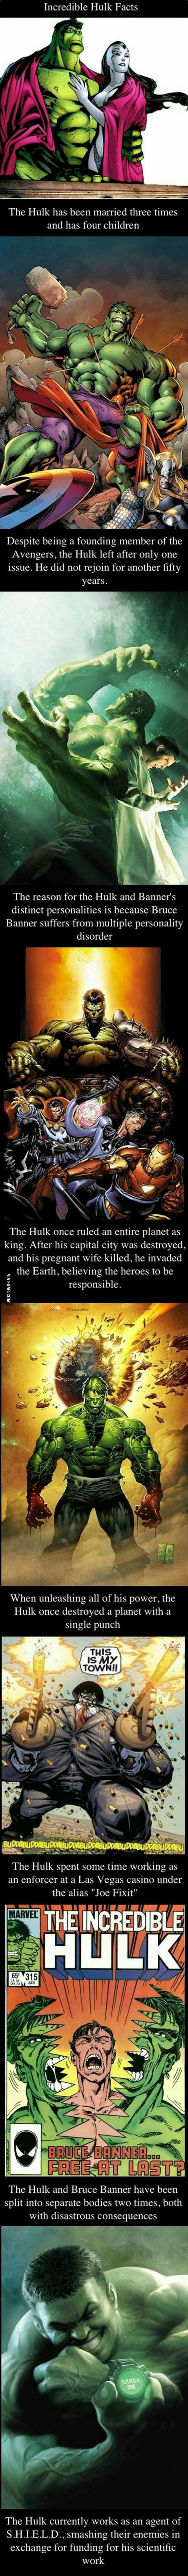 Hulk facts Freaking awesome 85 best comics